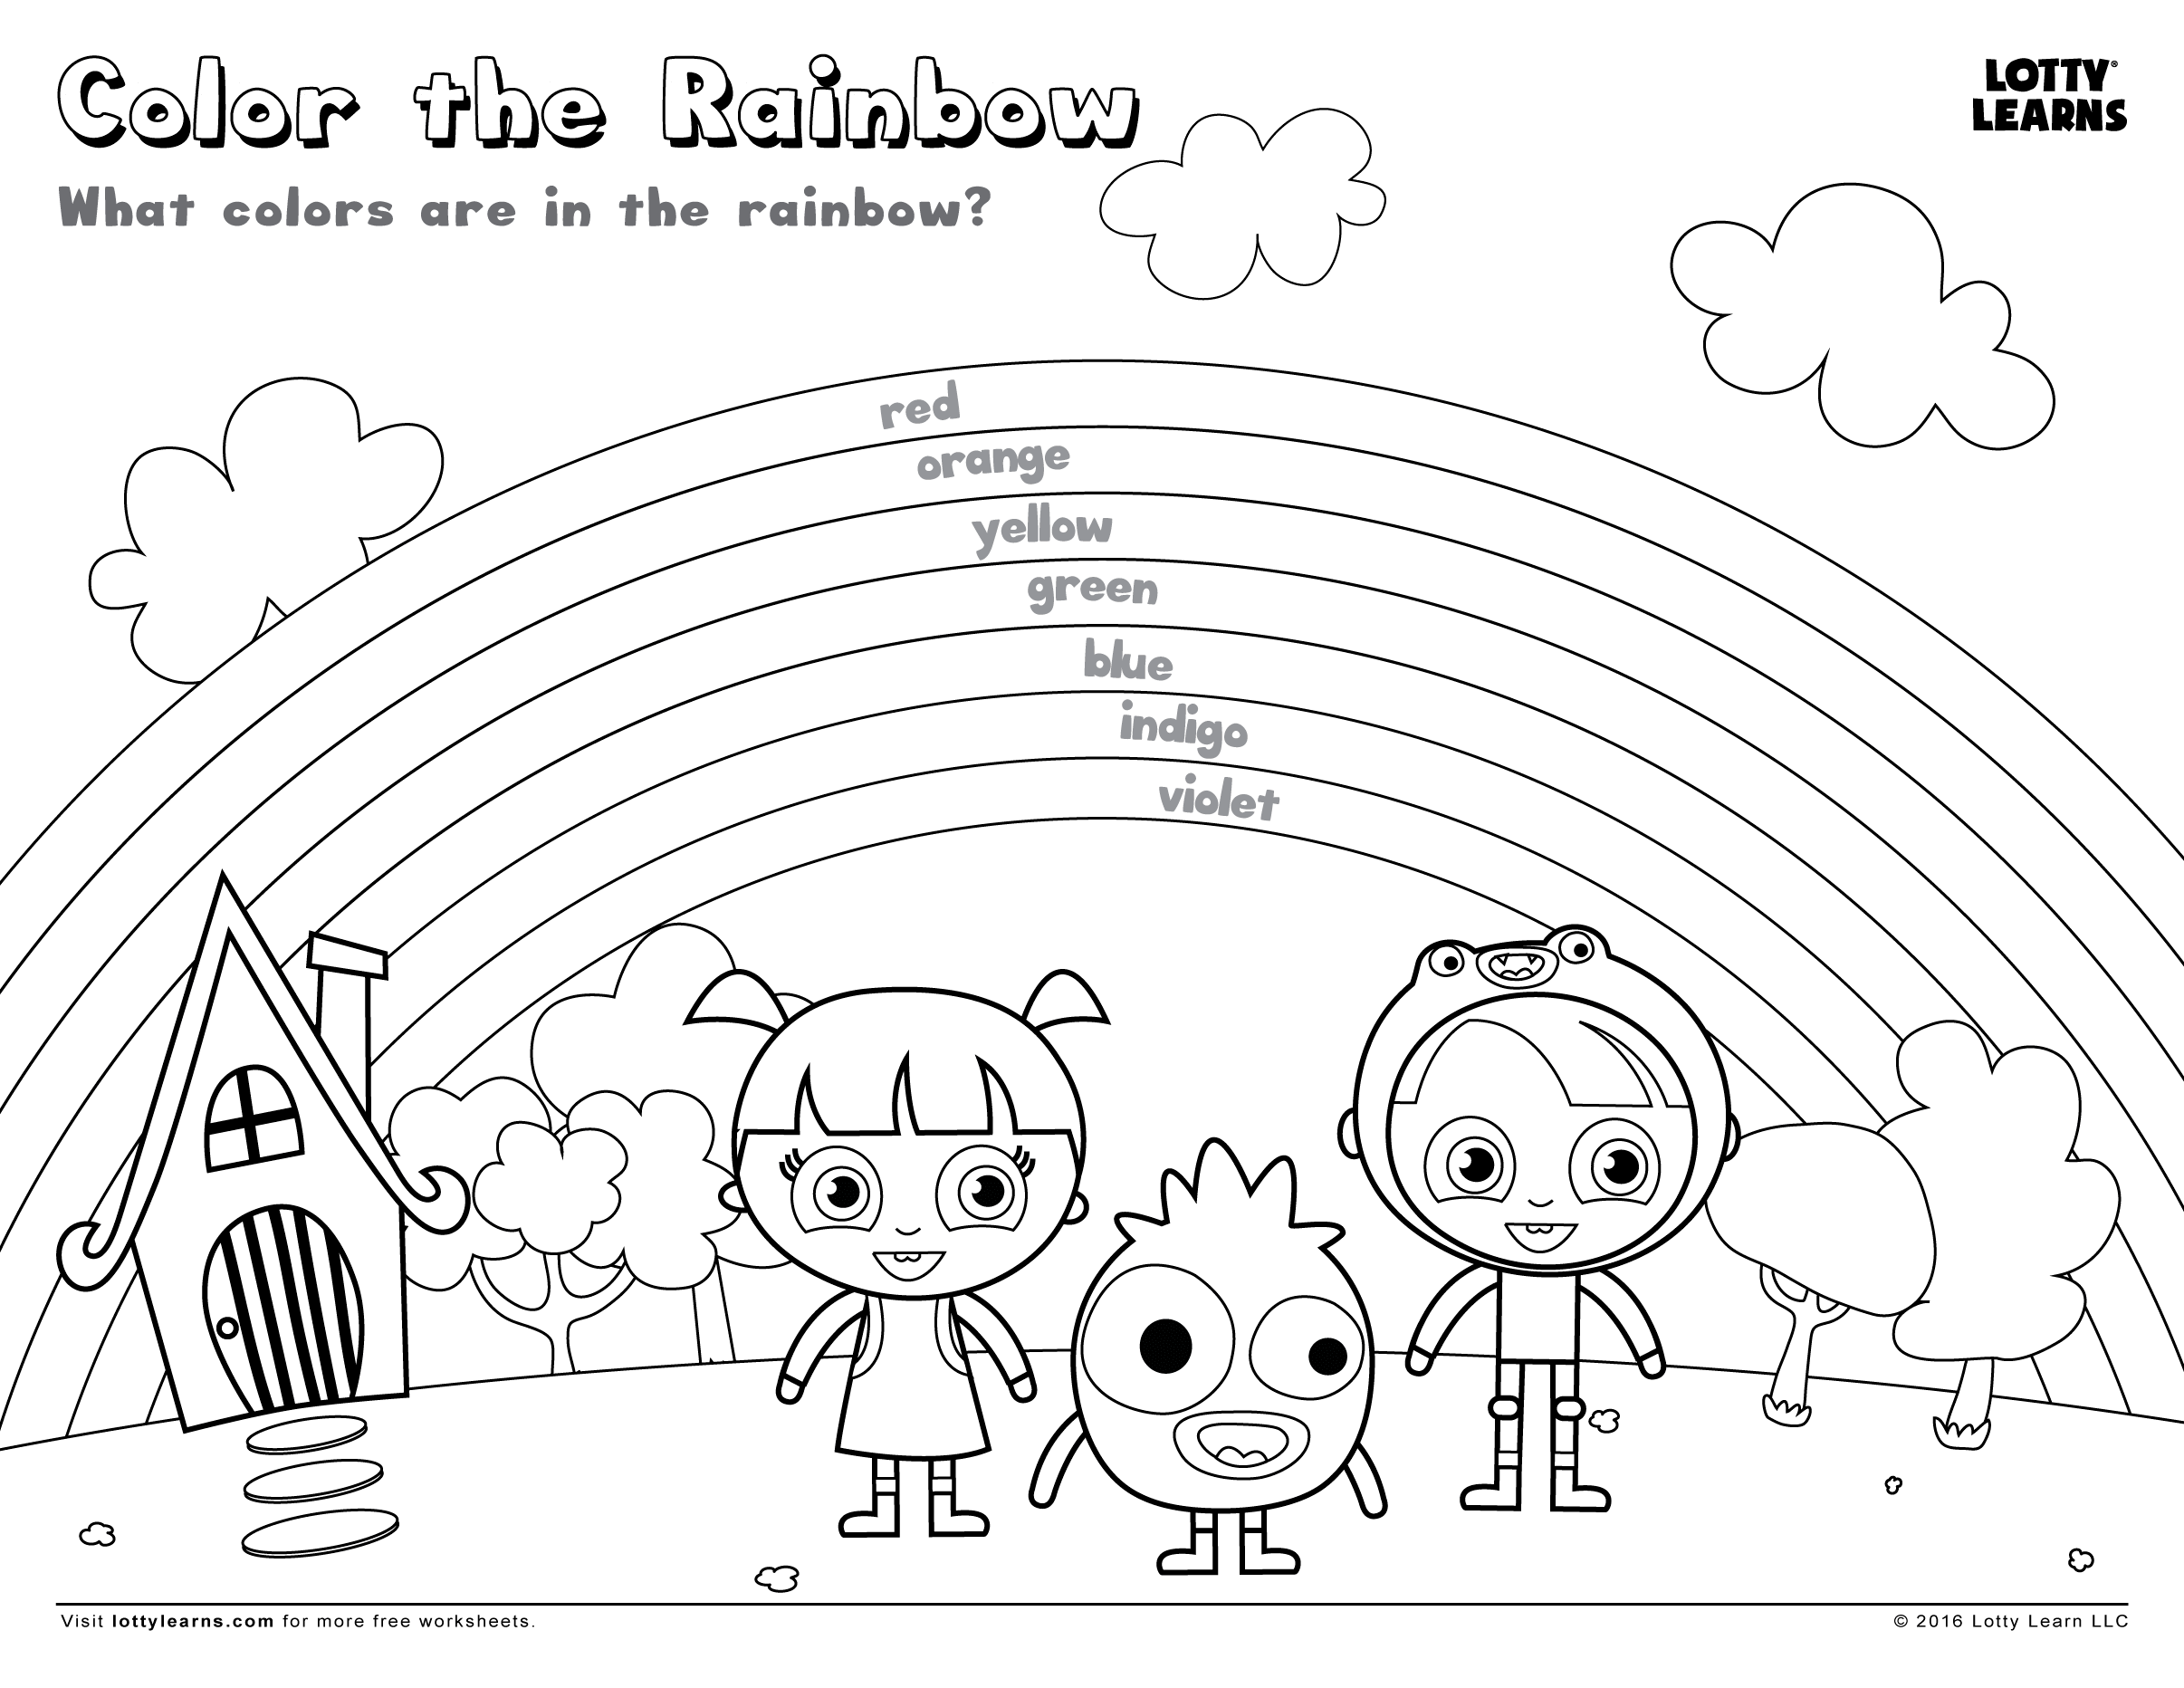 Color the Rainbow – Rainbow Worksheets